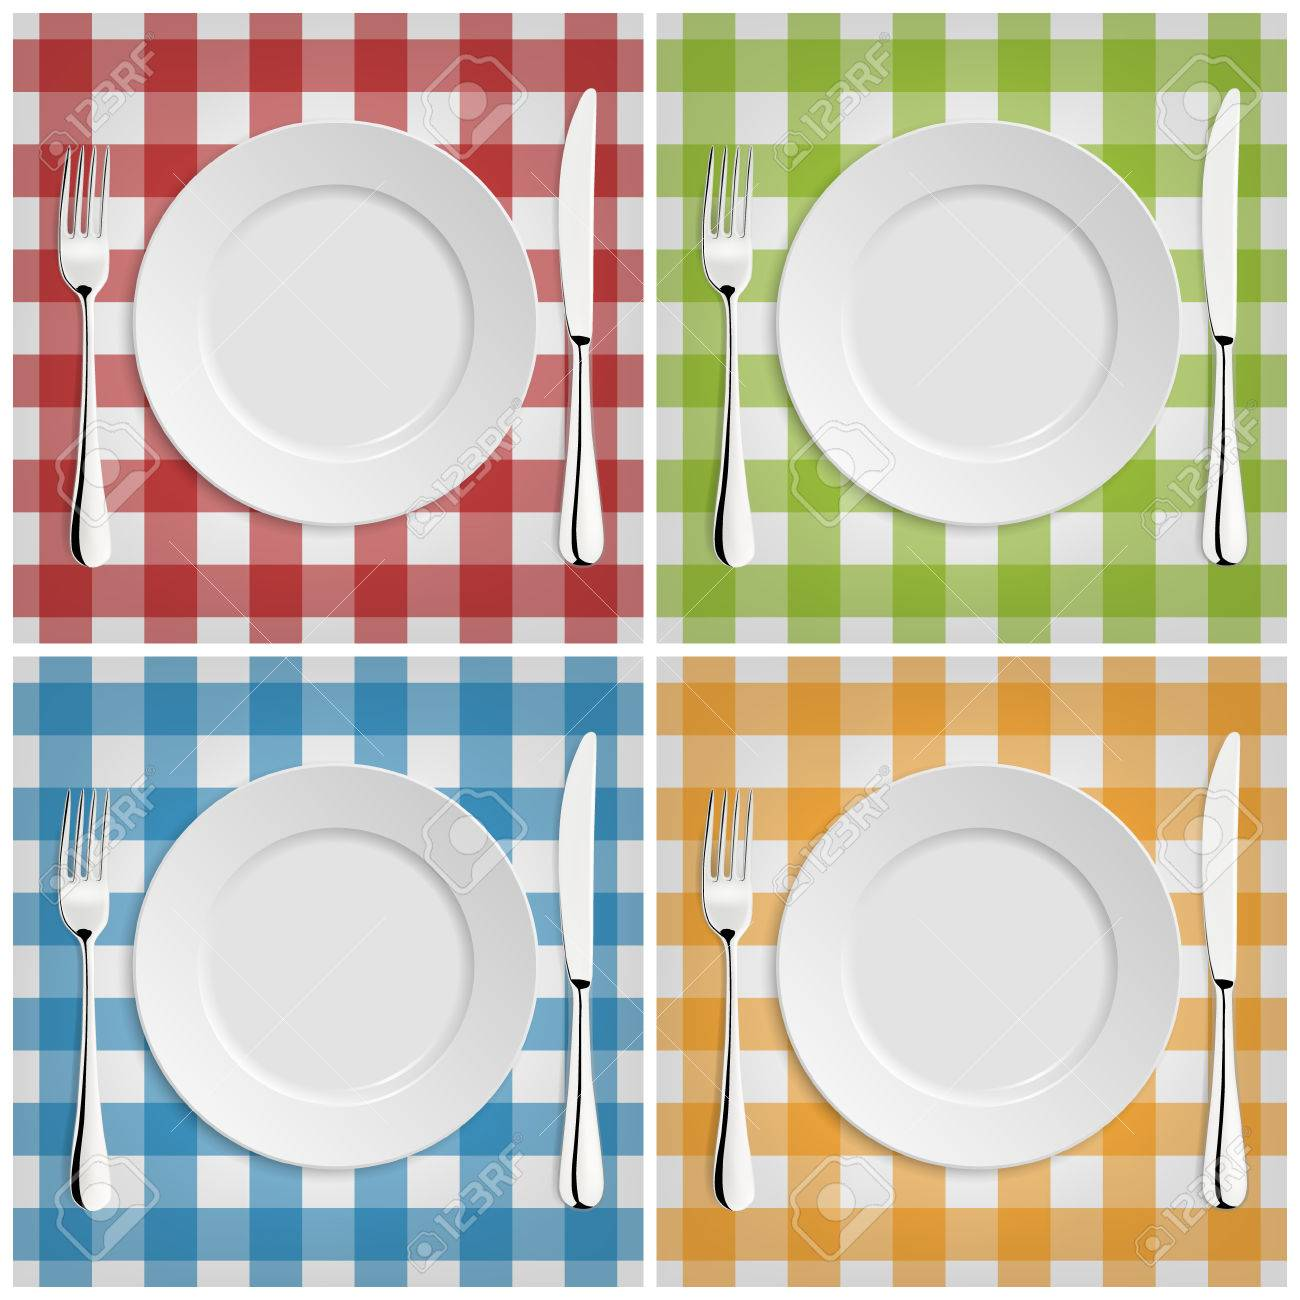 Empty plate with fork and knife at classic checkered tablecloth. - 43204311